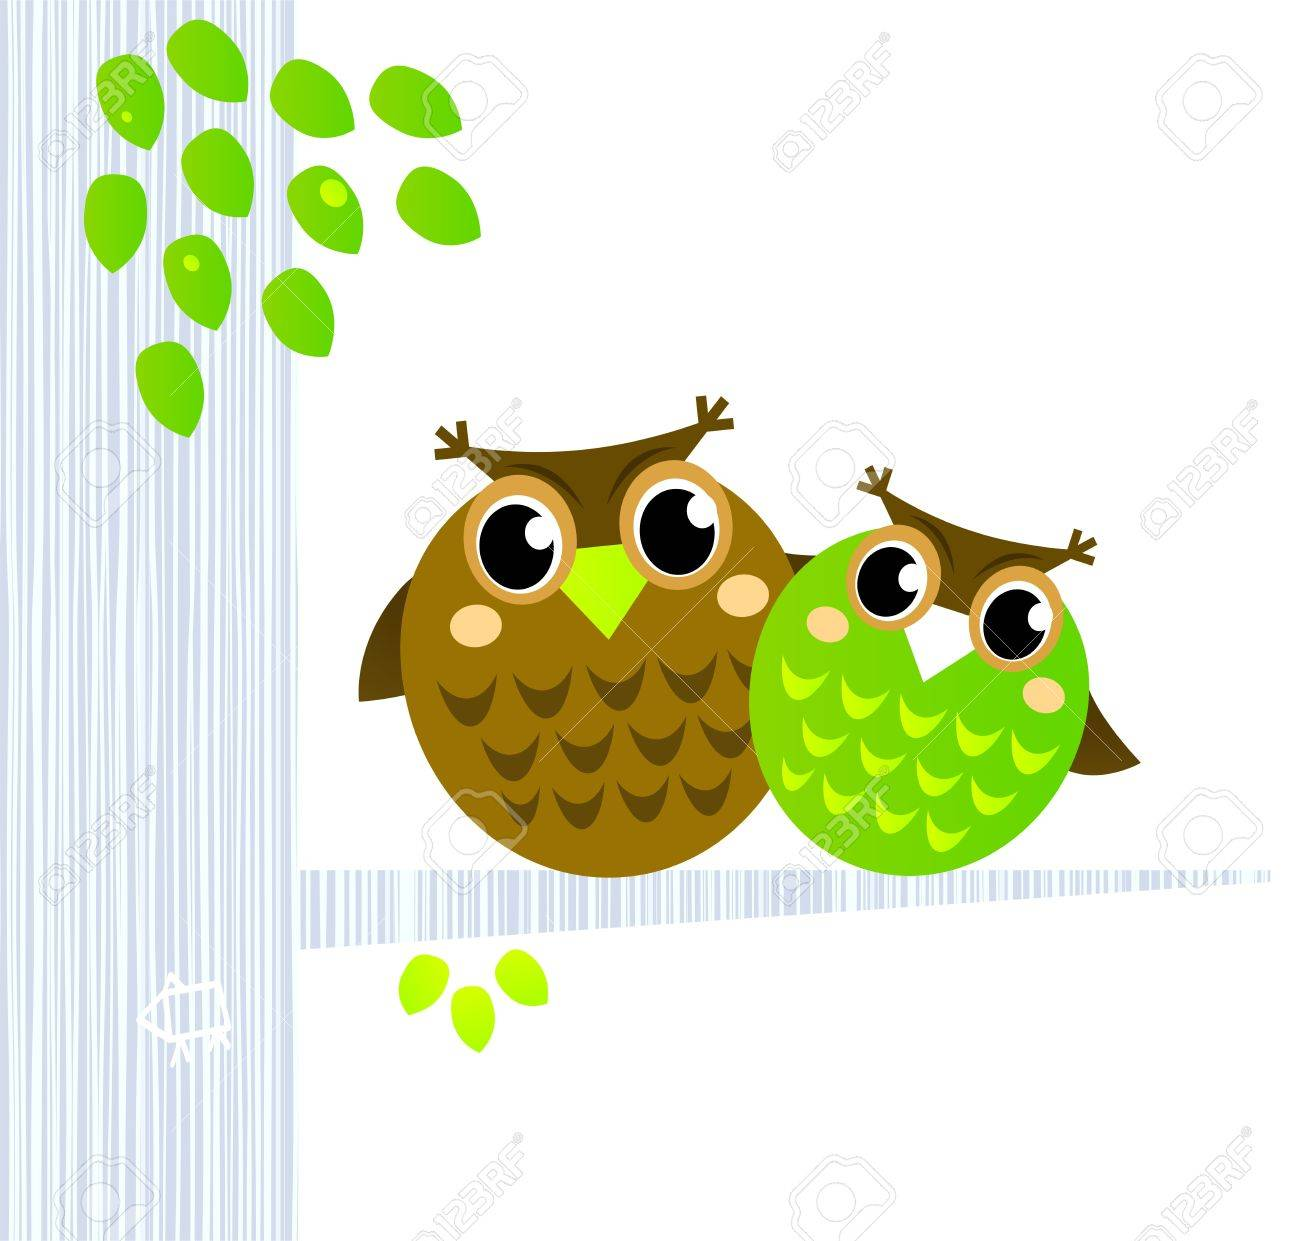 Owl Mascots sitting together - Vector cartoon Illustration. Stock Vector - 10378938